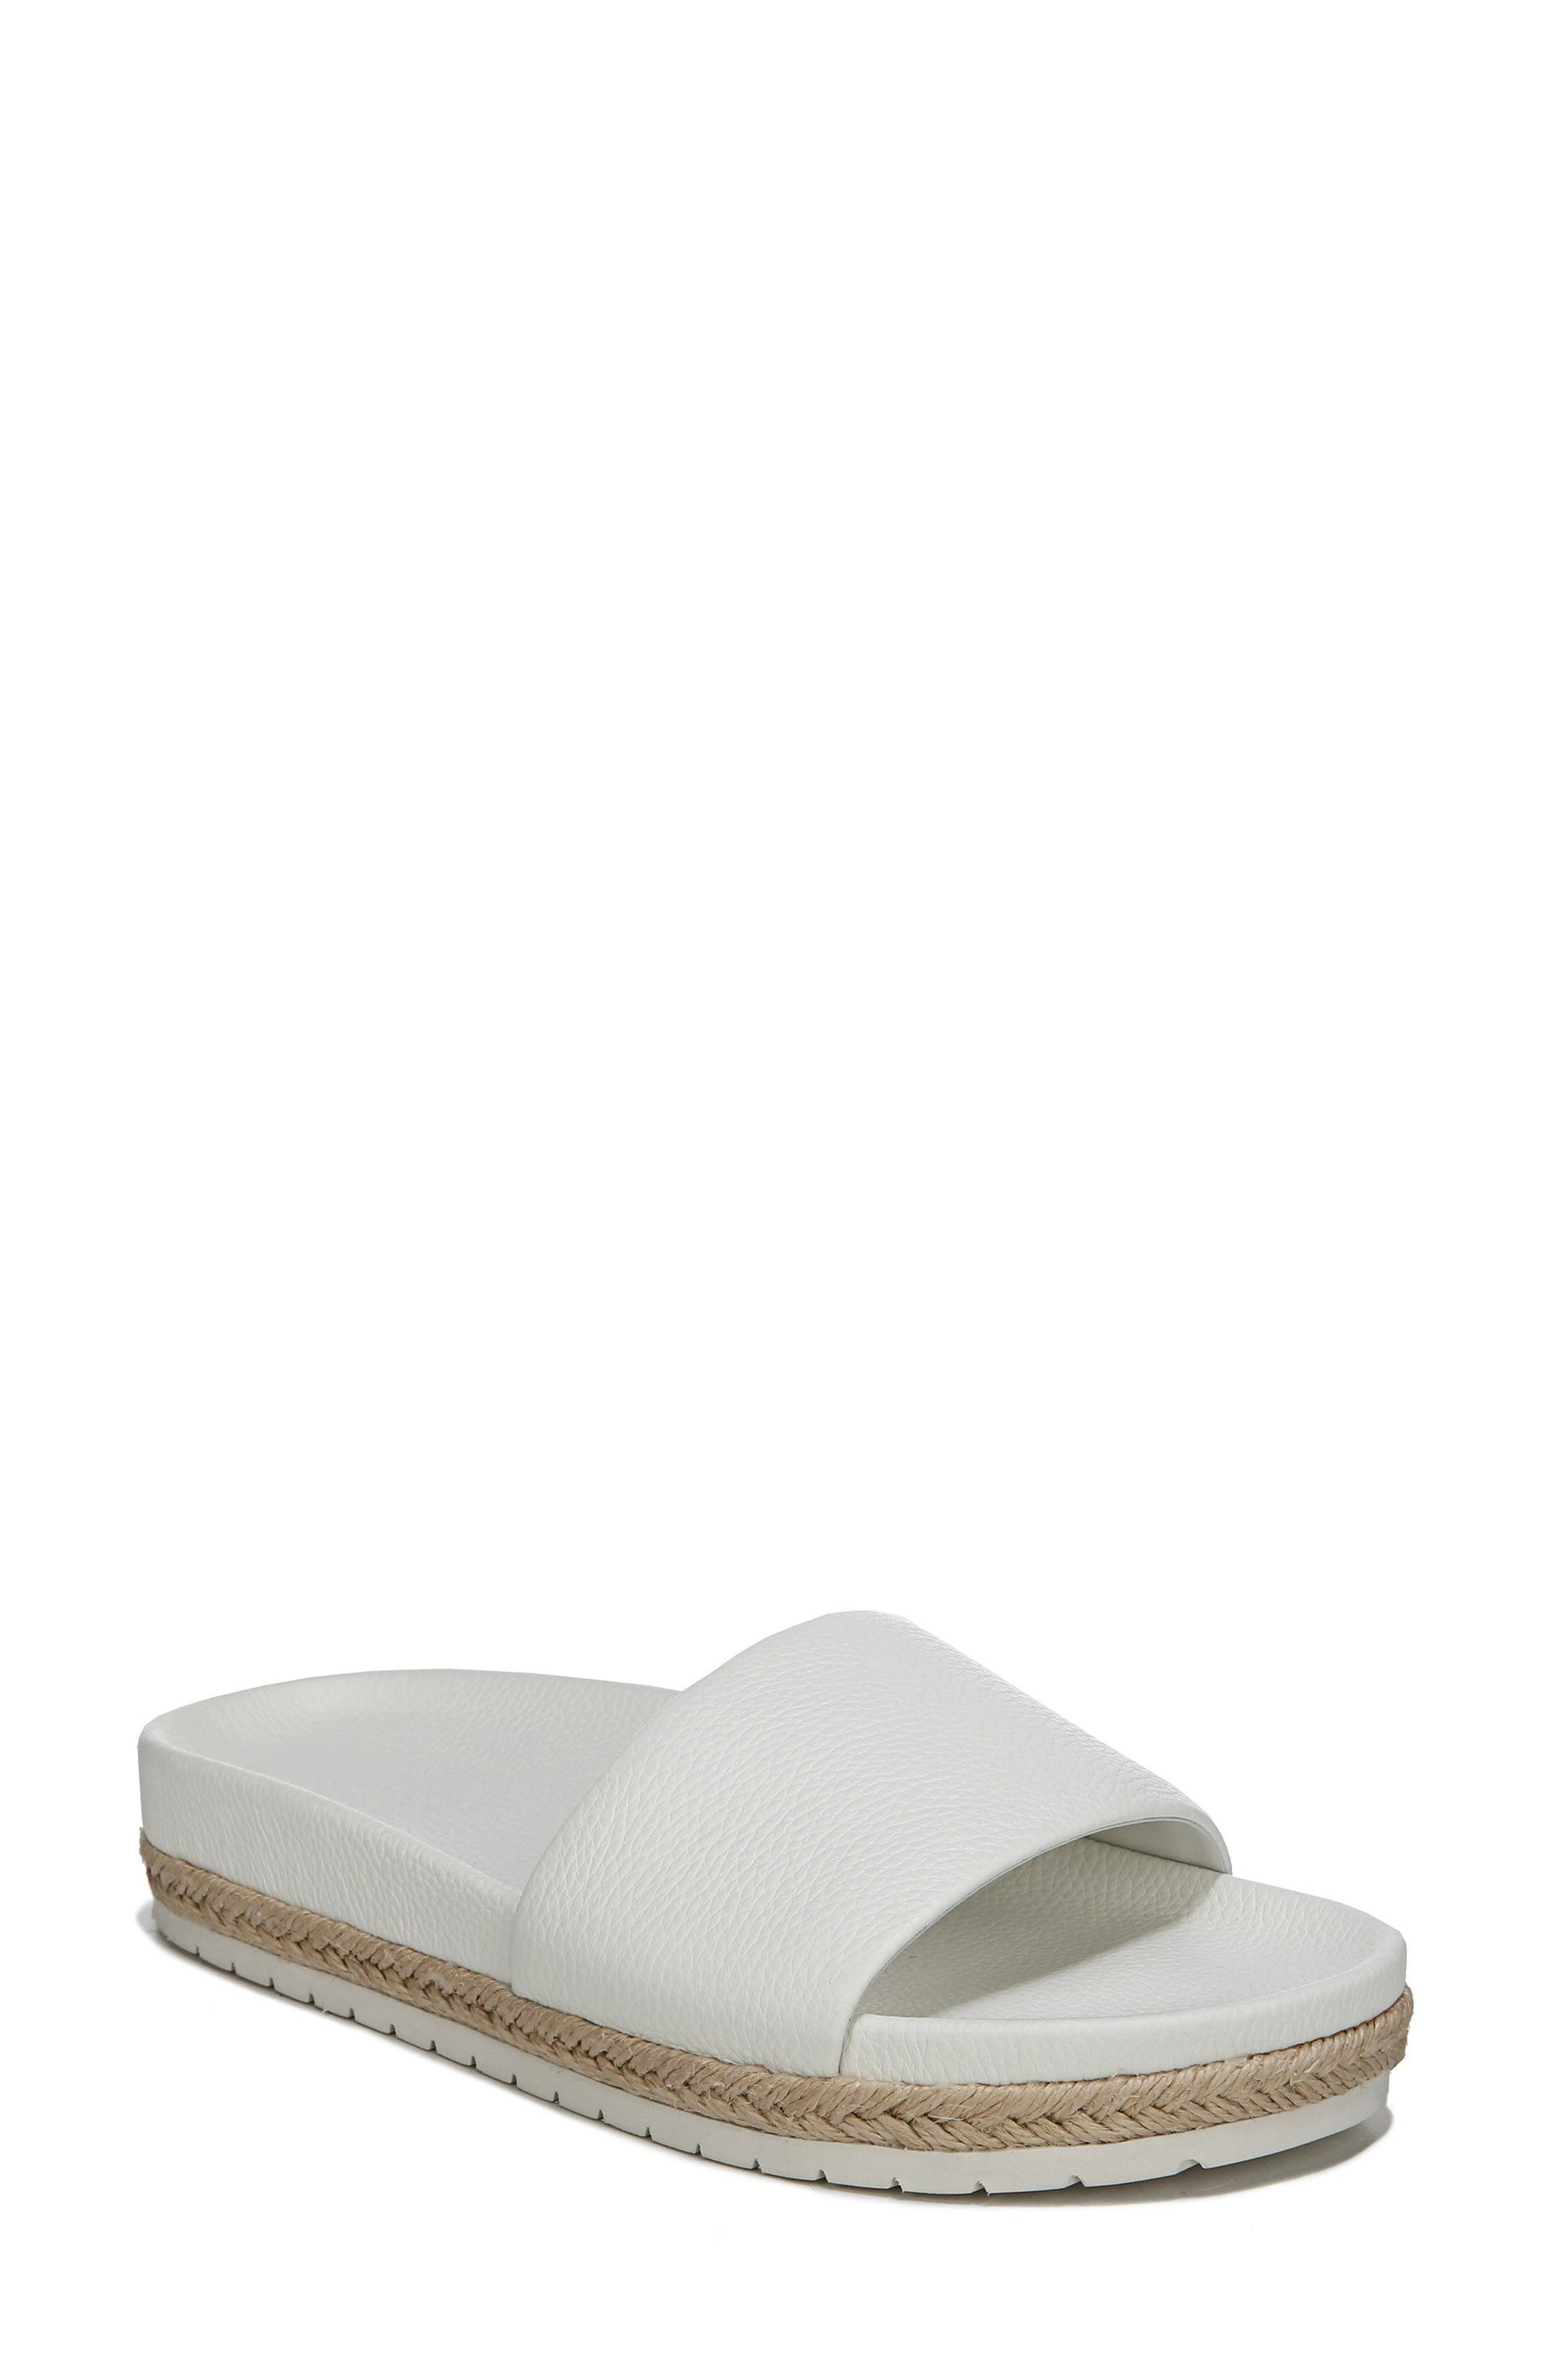 Aurelia Slide Sandal,                             Main thumbnail 1, color,                             Panna Cotta